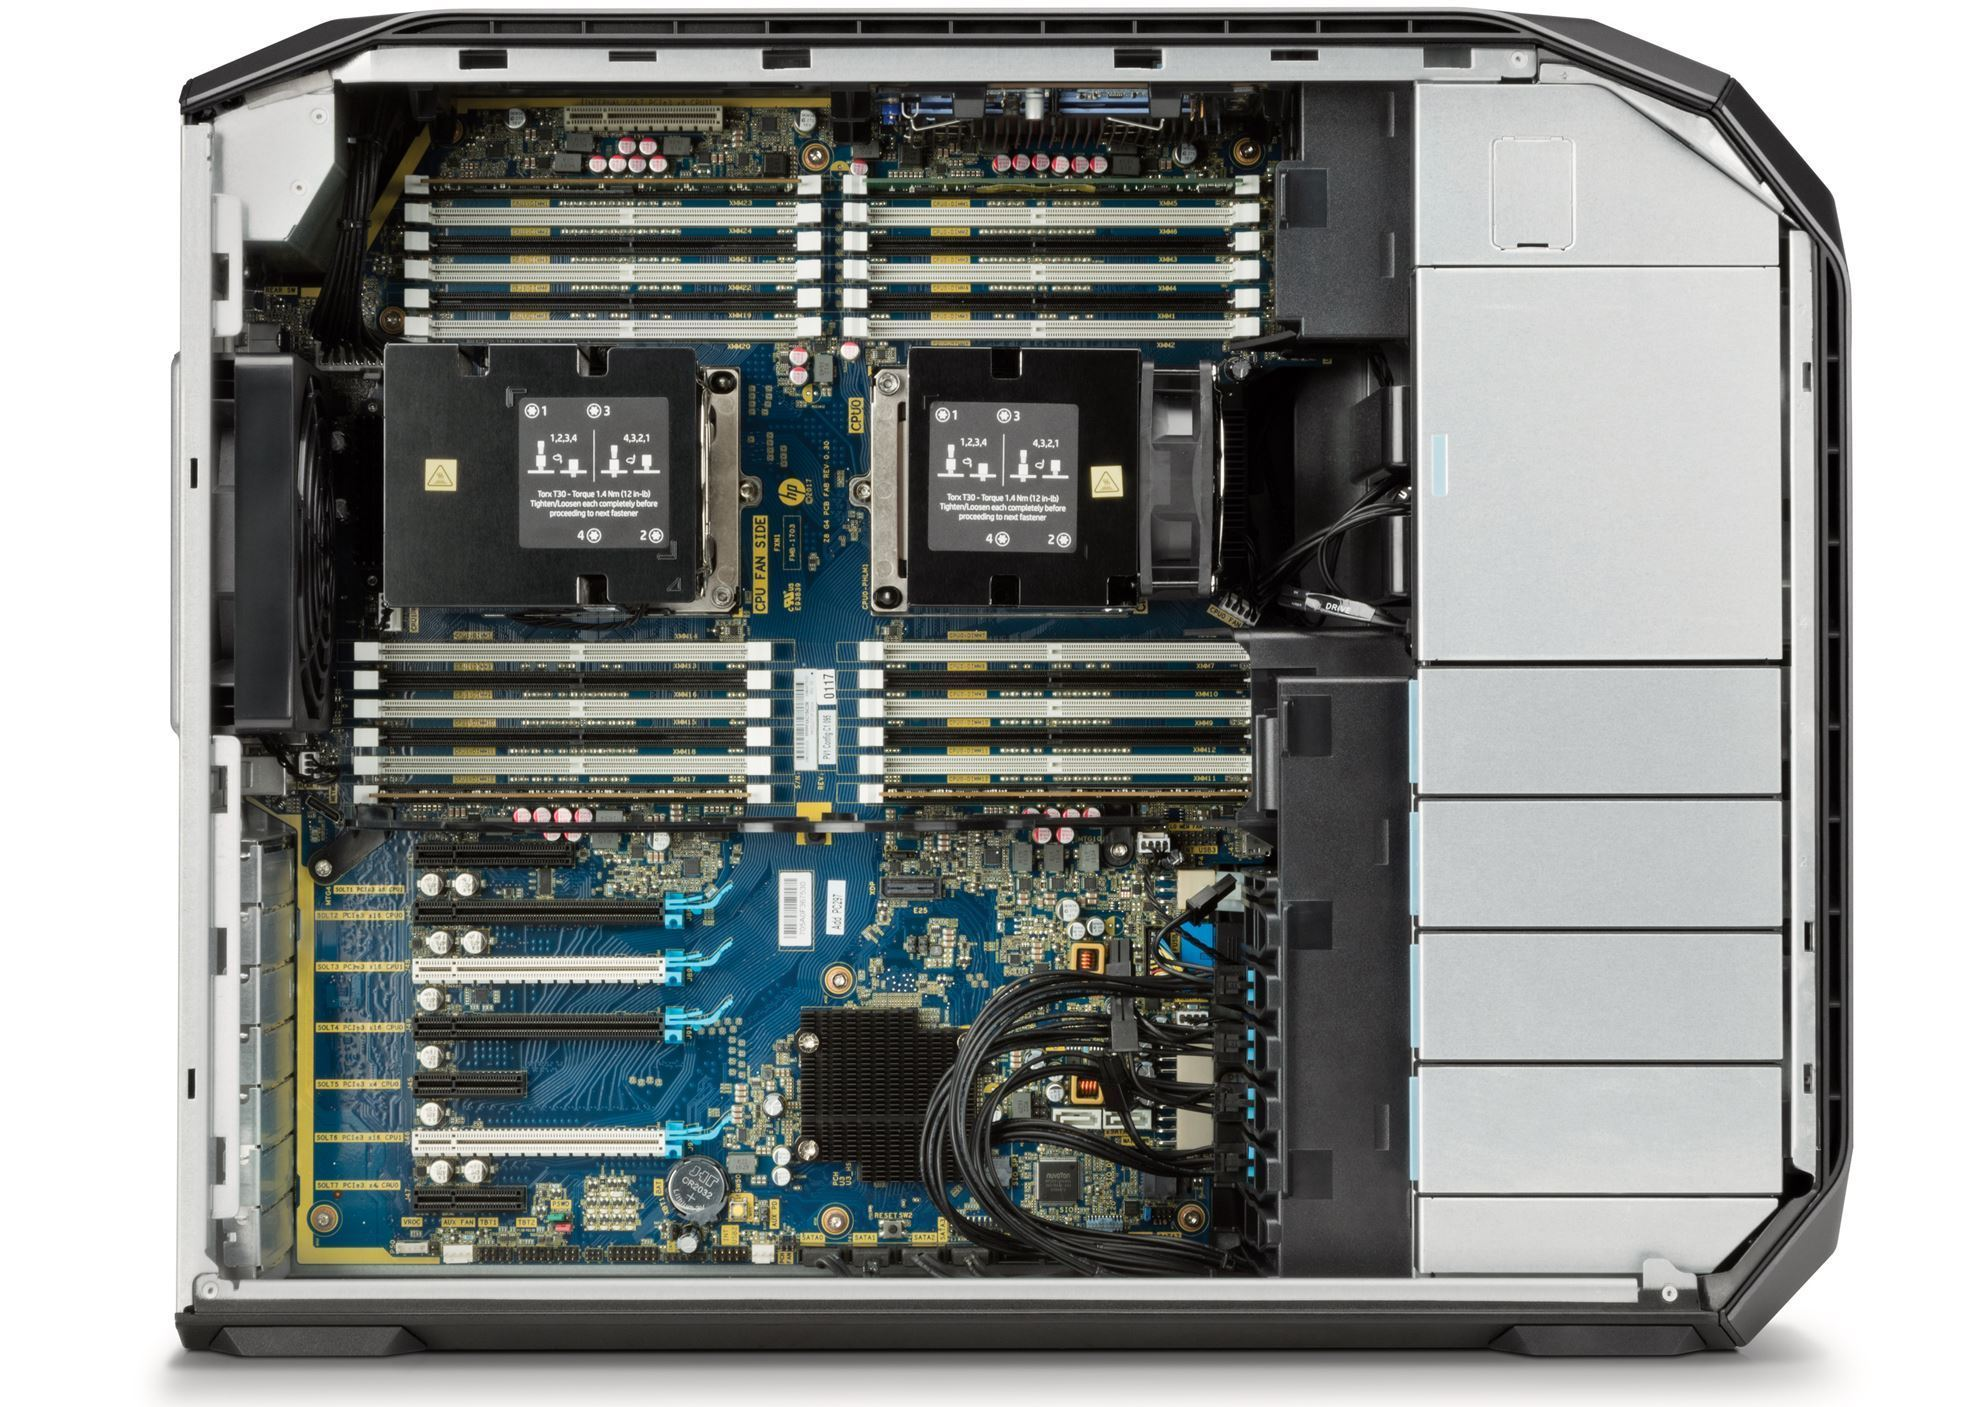 Picture of HP Z8 G4 Workstation Gold 6238